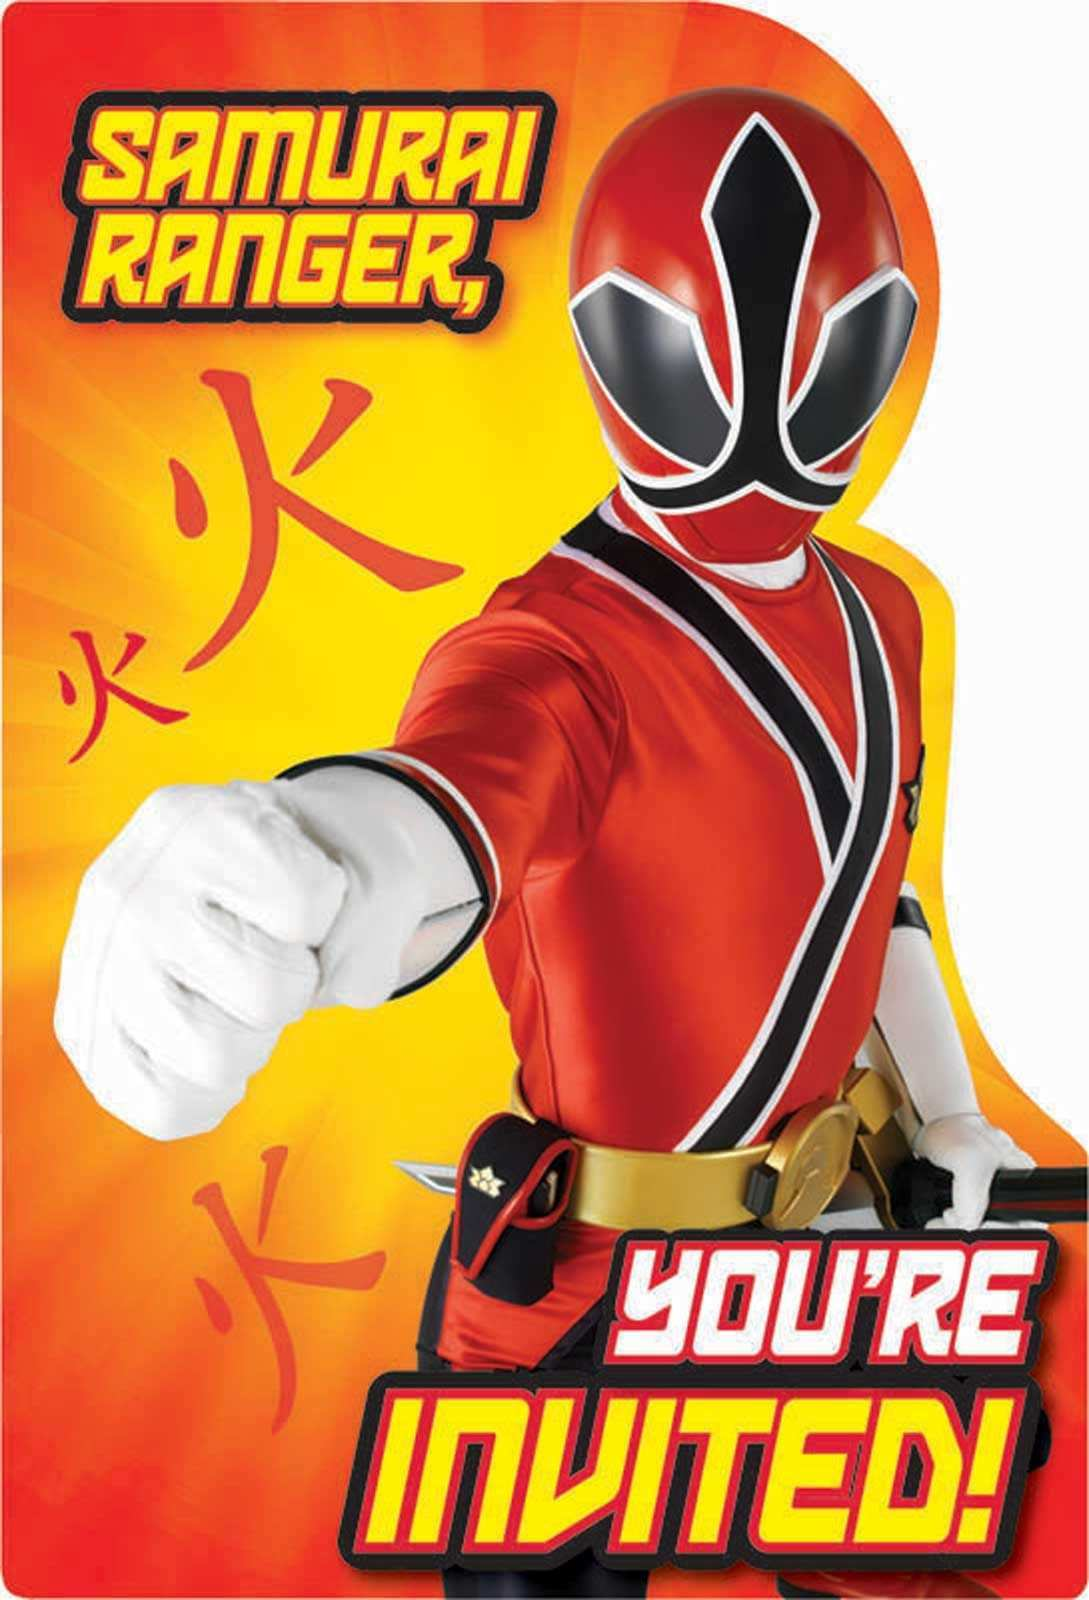 17 Customize Our Free Power Rangers Birthday Invitation Template For Ms Word With Power Rangers Birthday Invitation Template Cards Design Templates